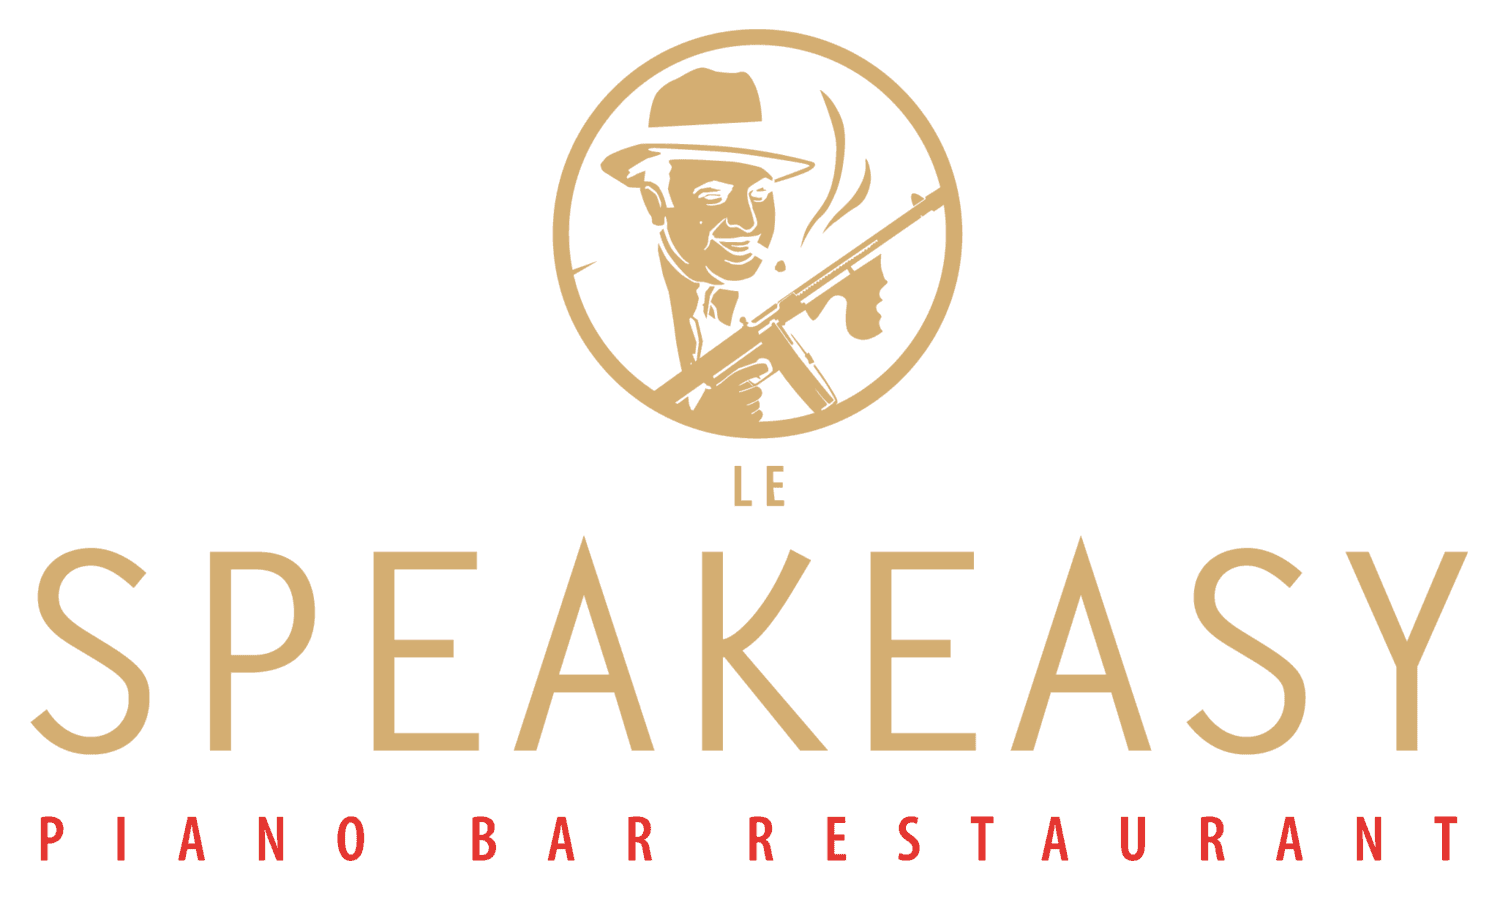 Le Speakeasy | Restaurant Piano Bar